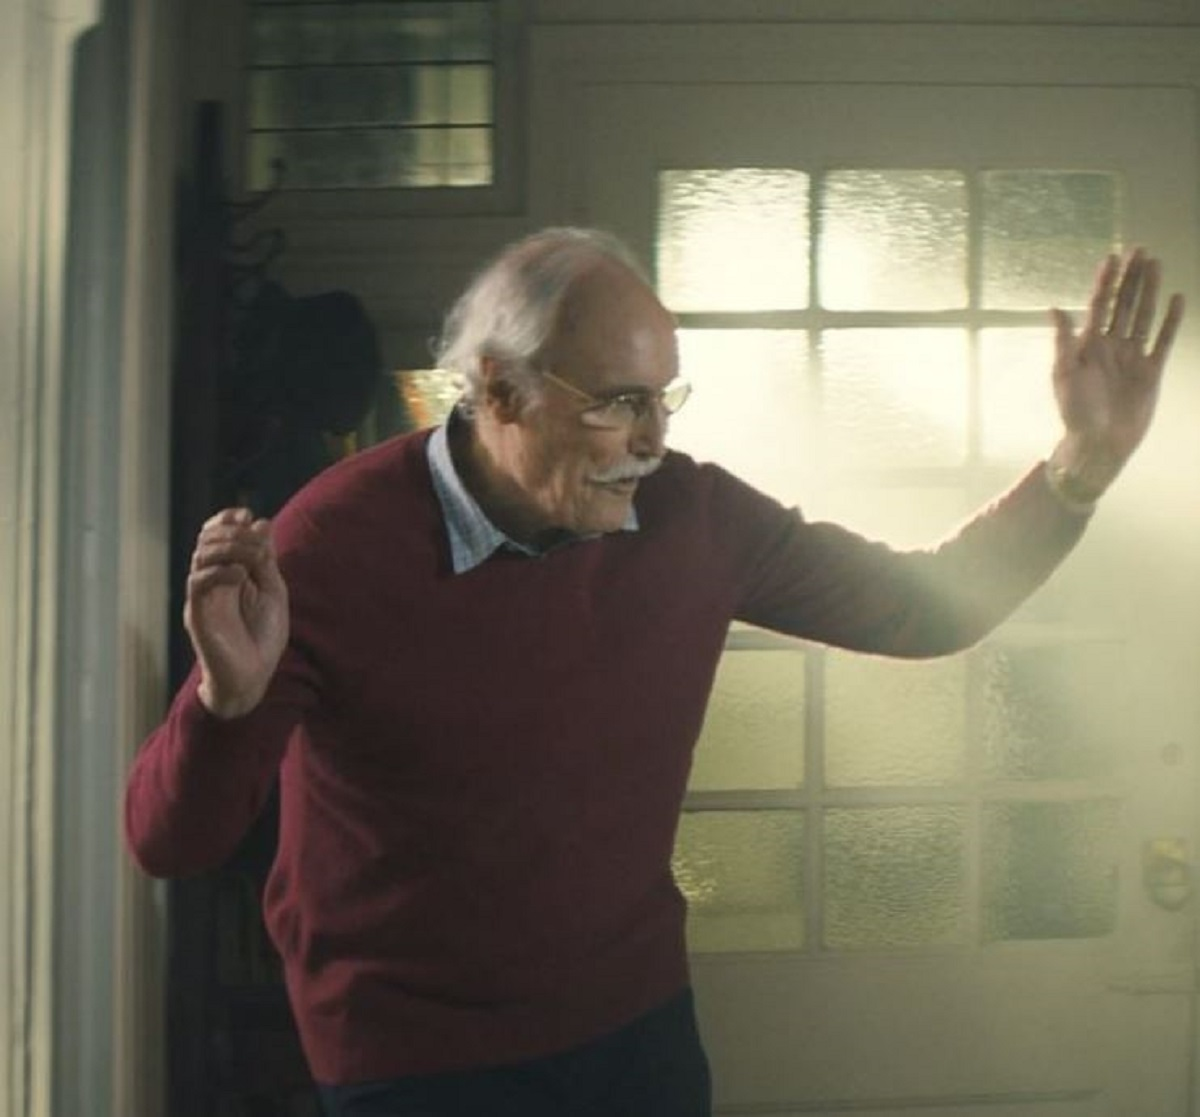 Retired auto industry worker pursues his dream of acting at 84